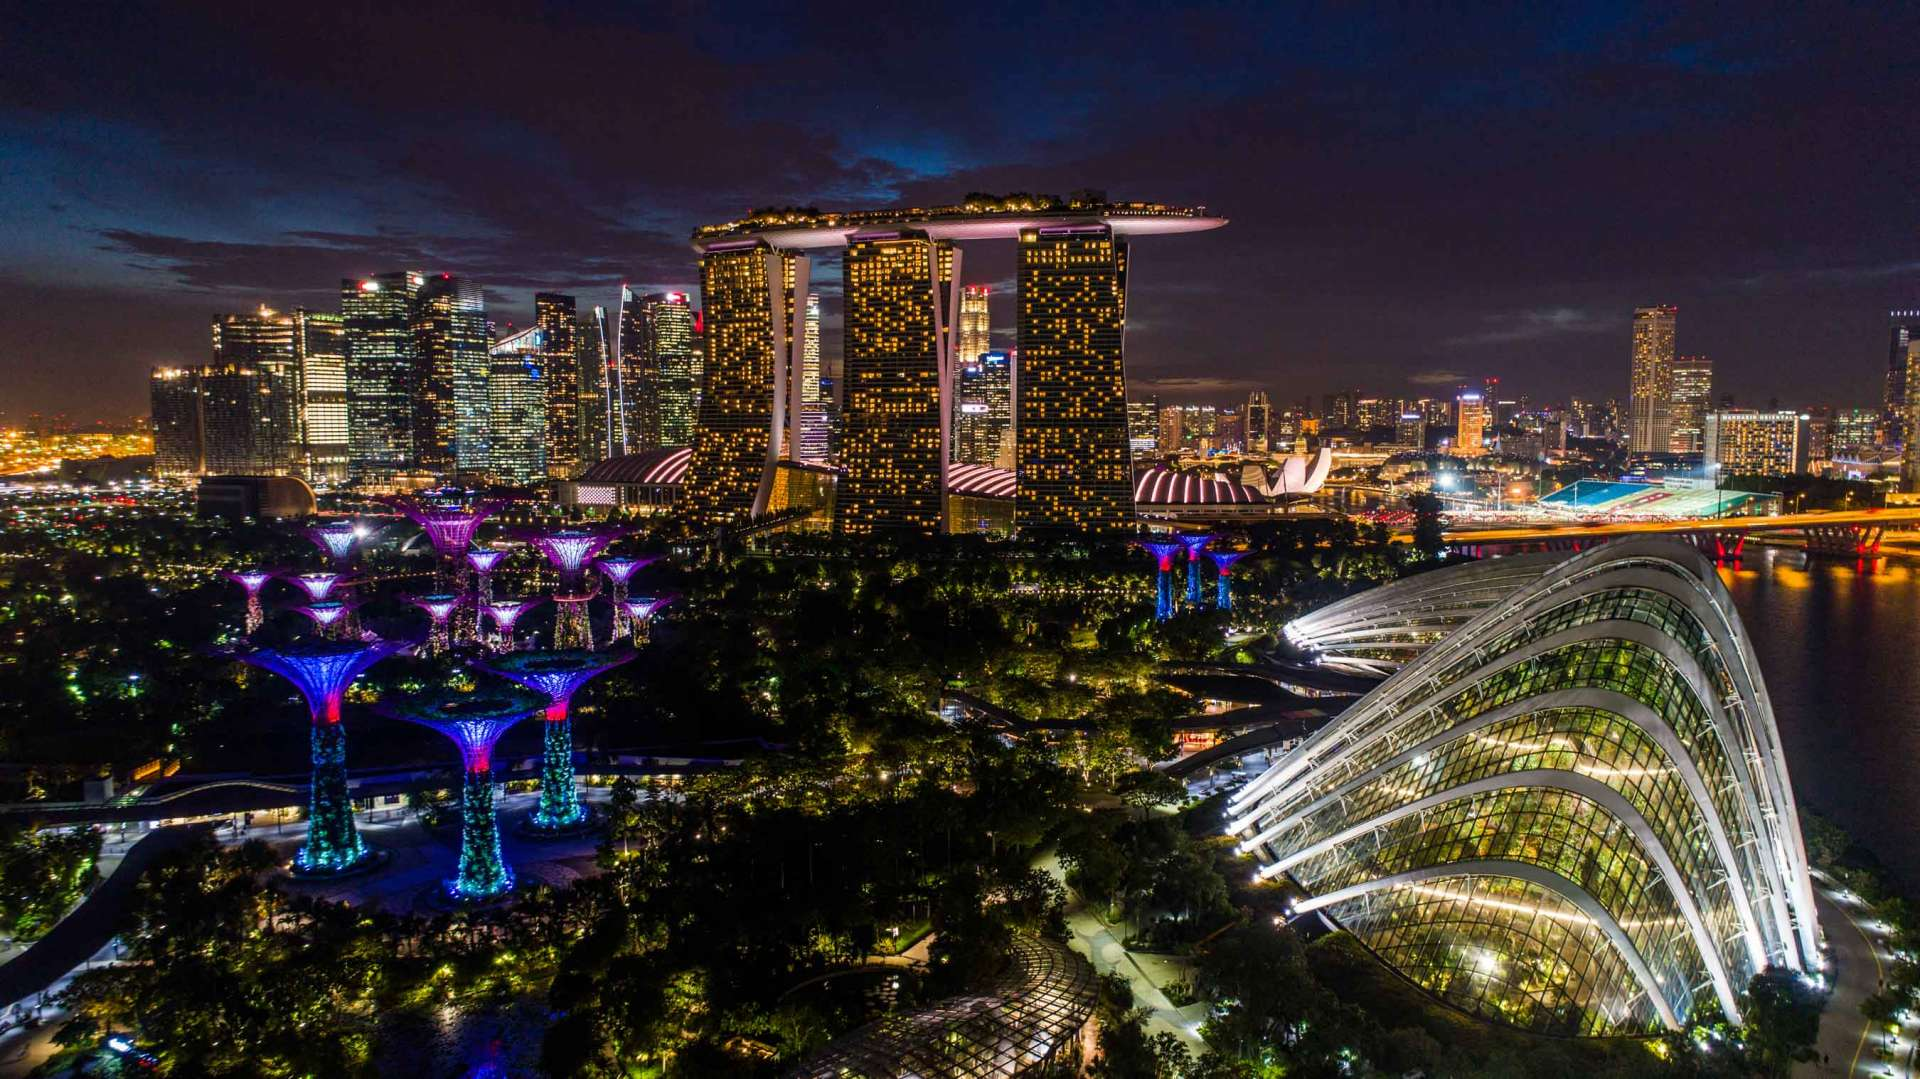 Singapore Pescart Enrico Pescantini Gardens by the Bay Marina Bay Sands nightscape drone 2